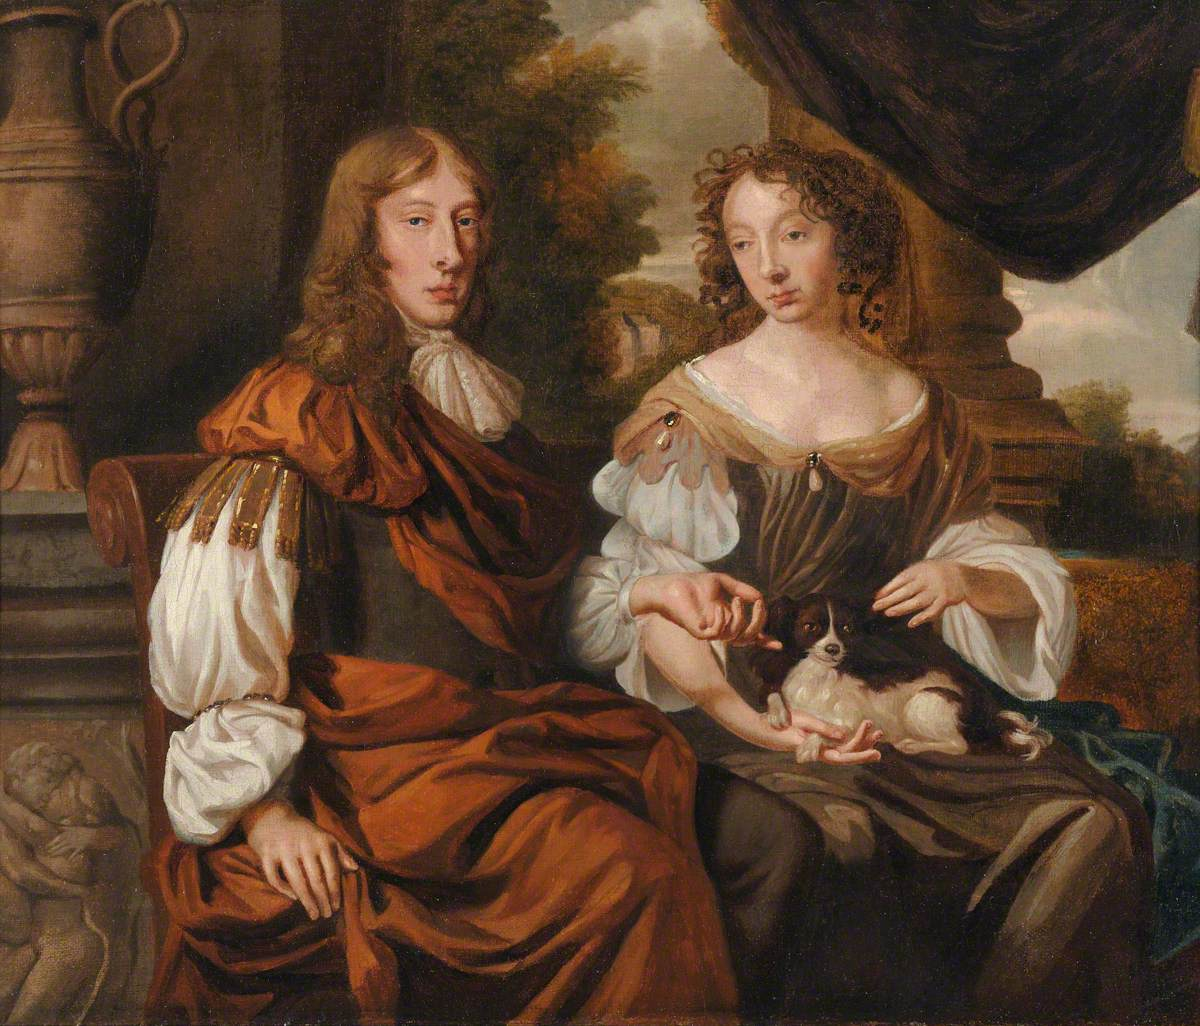 Thomas Fanshawe (1628–1705), with his second wife, Elizabeth (1641–1729), by Anglo/Dutch School. Valence House Museum. LDVAL 2004.5.2